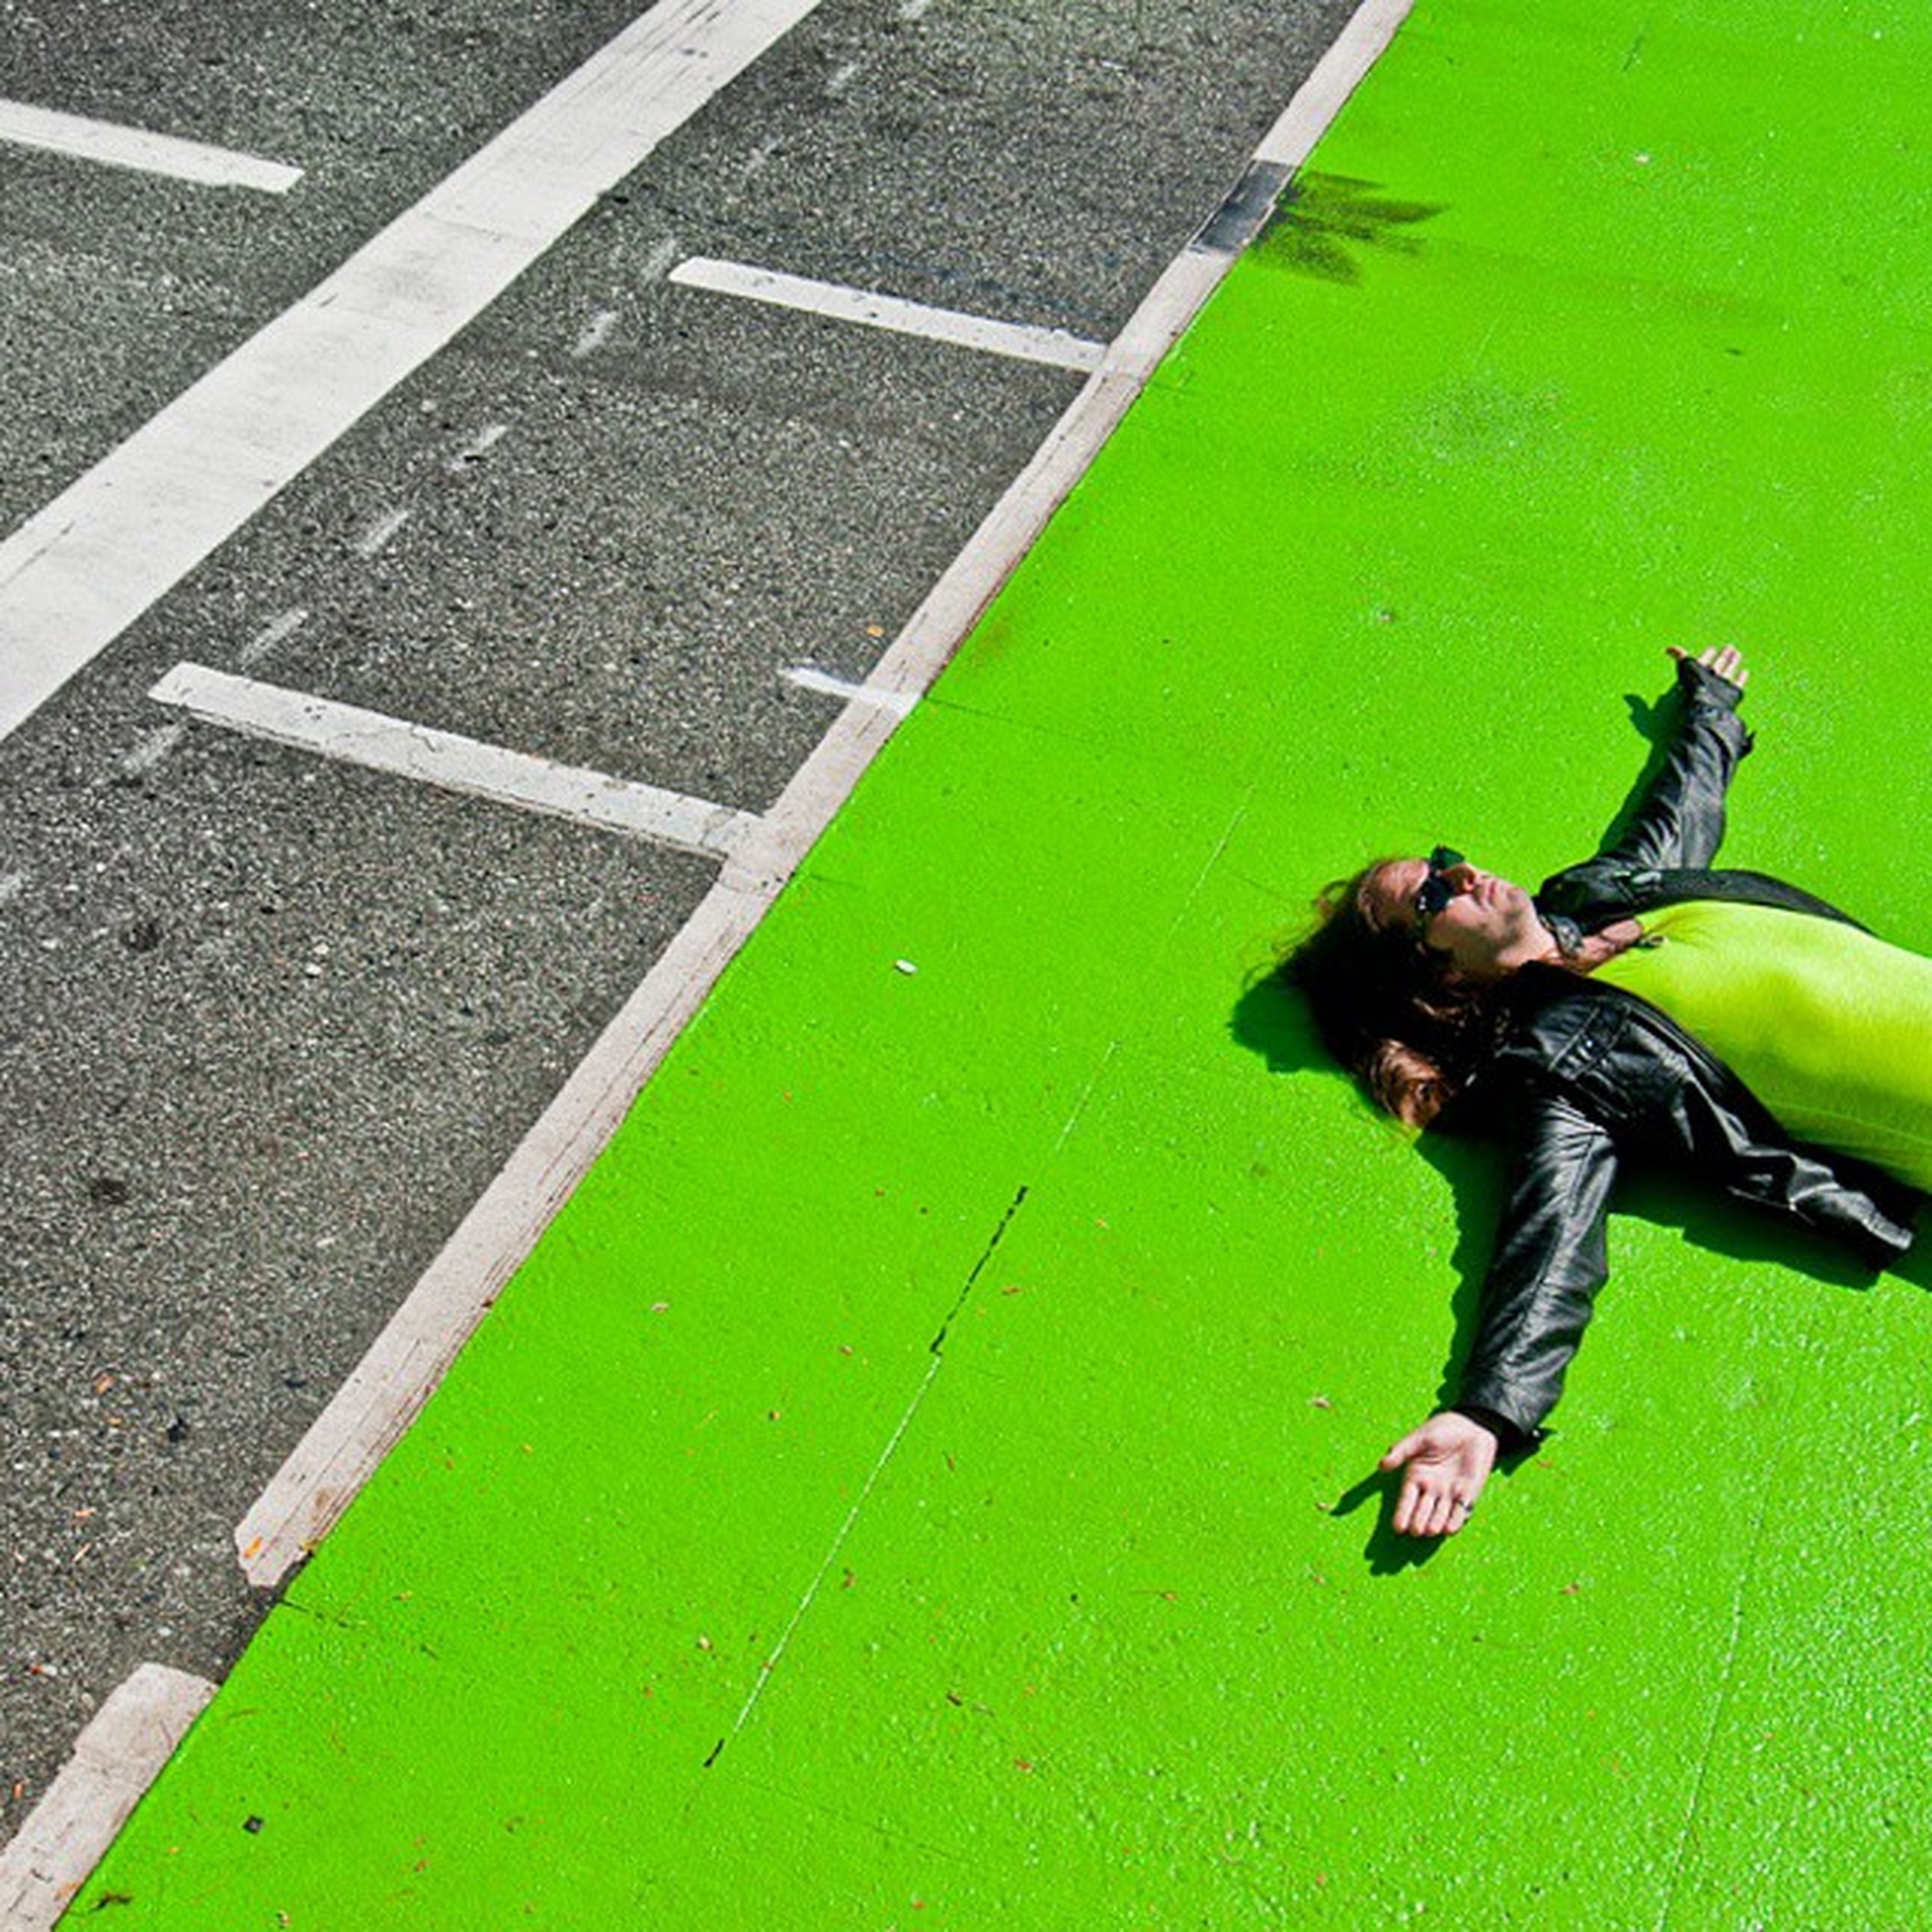 animal themes, street, high angle view, one animal, full length, human representation, green color, grass, dog, day, road, outdoors, road marking, wildlife, shadow, asphalt, sunlight, animals in the wild, statue